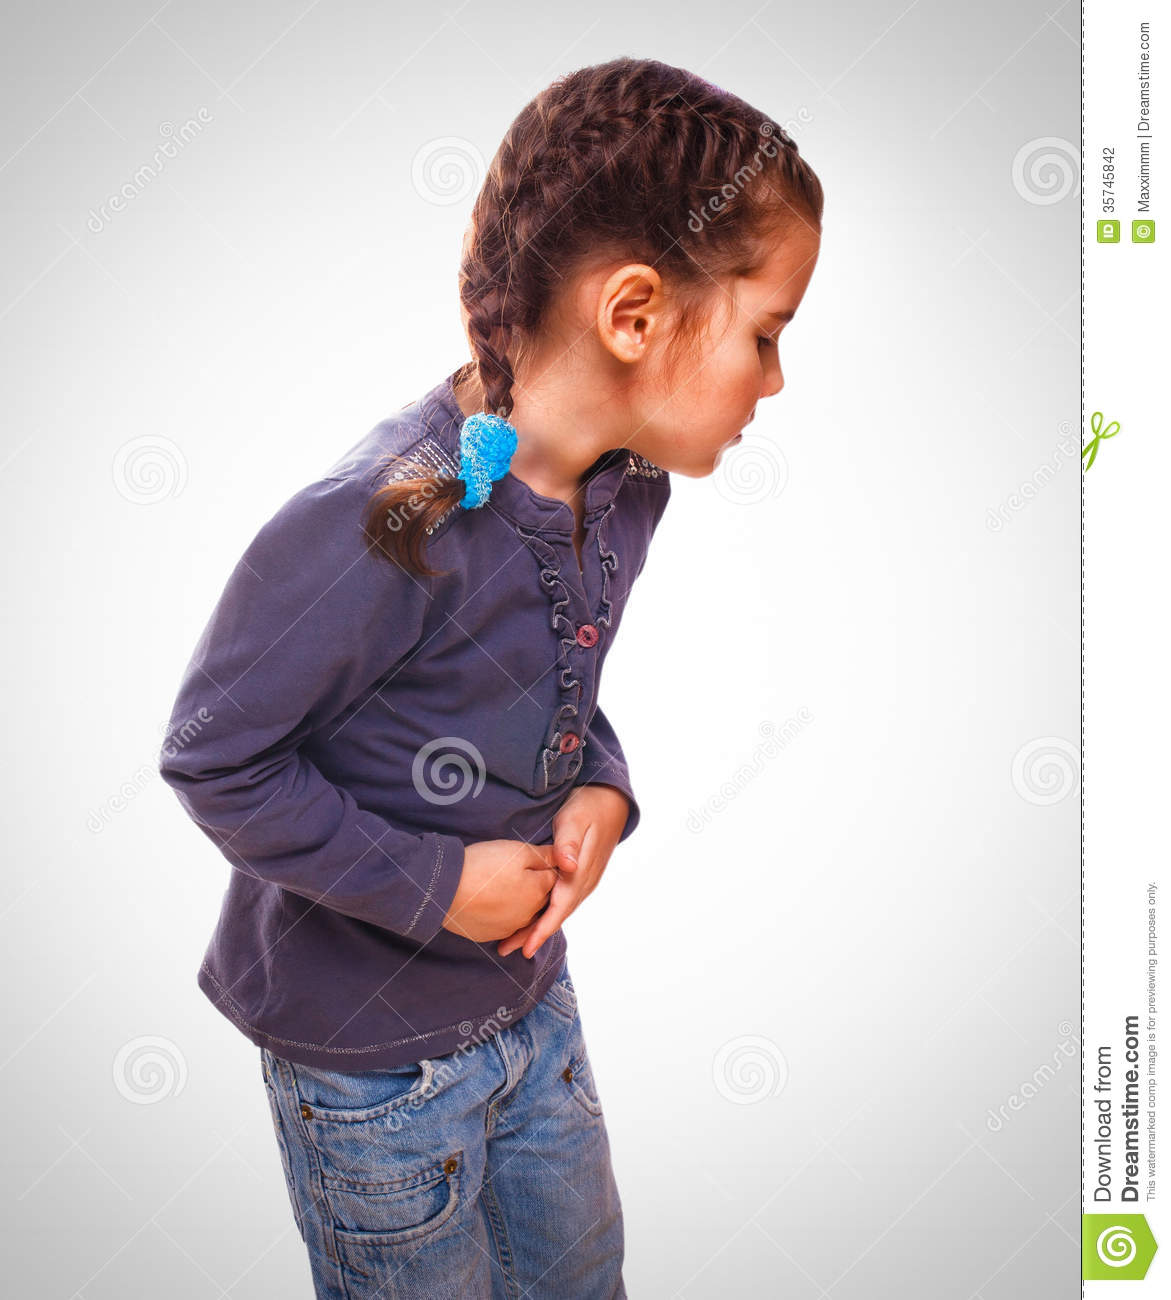 Stomach pain from probiotic foods